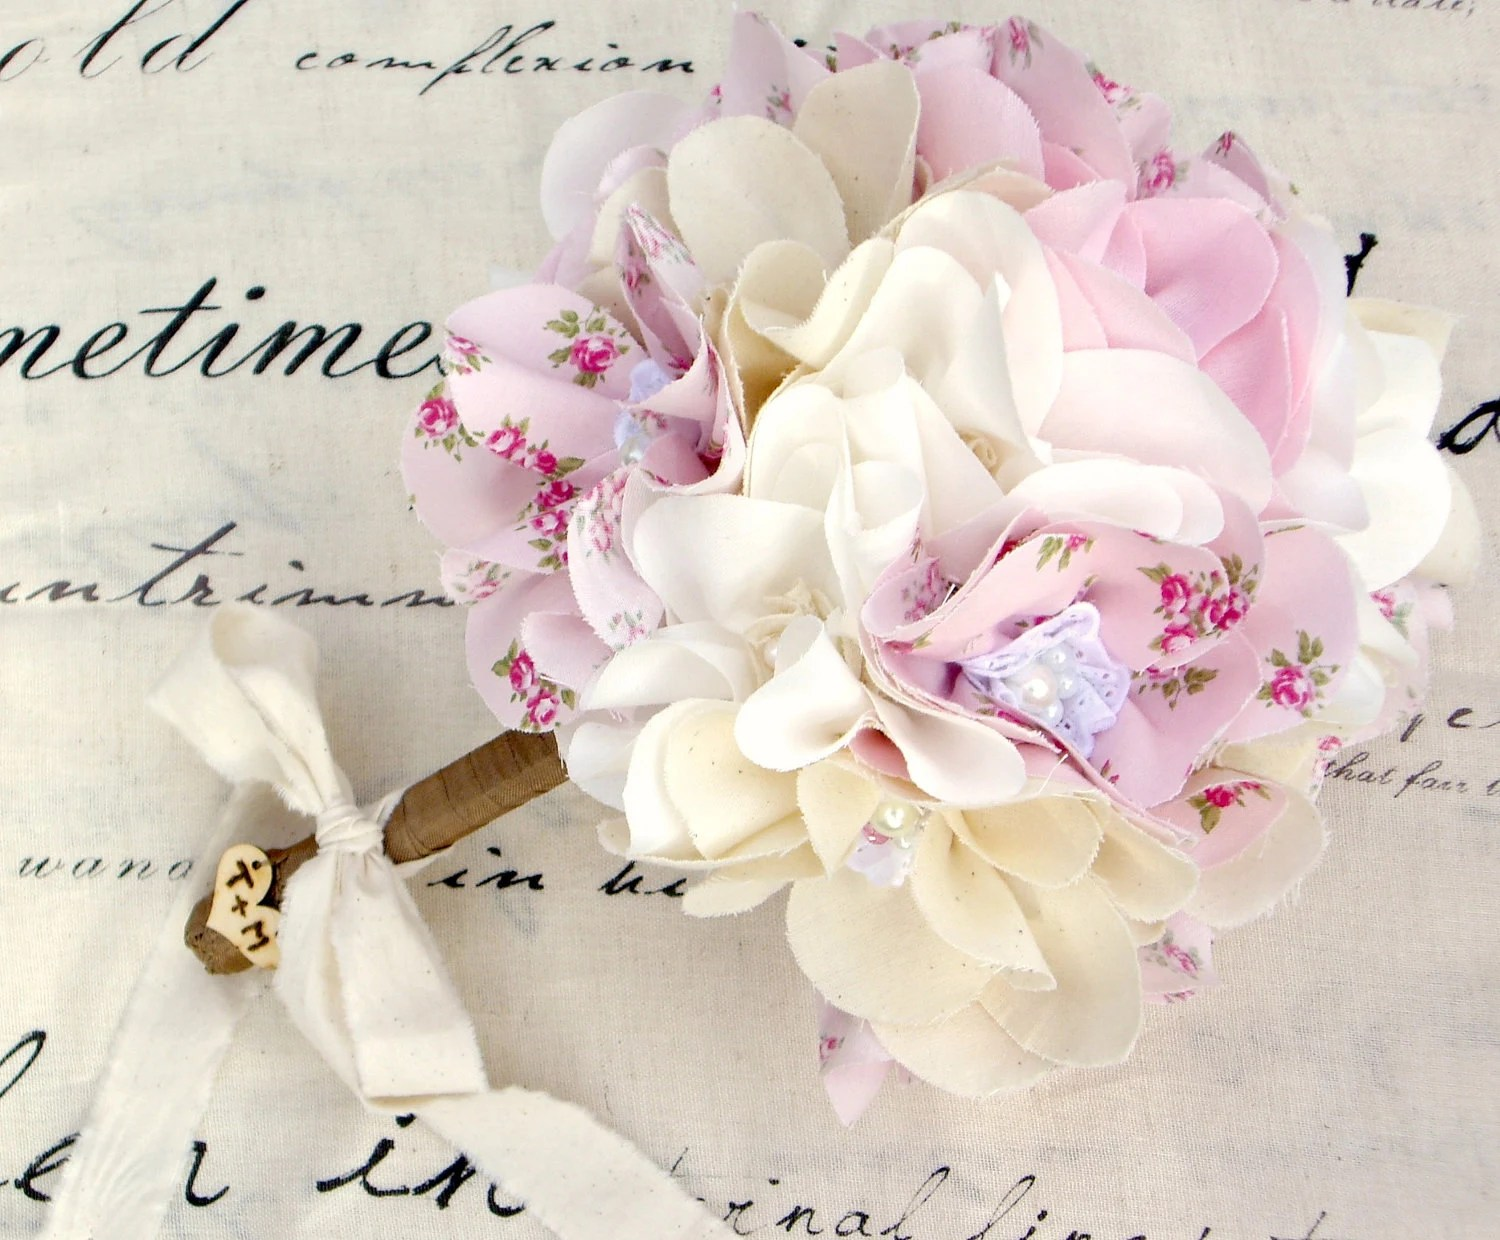 Bridal bouquet, Weddings, Shabby chic, Fabric flowers, Pink cotton magnolias, Bride - Innstyches